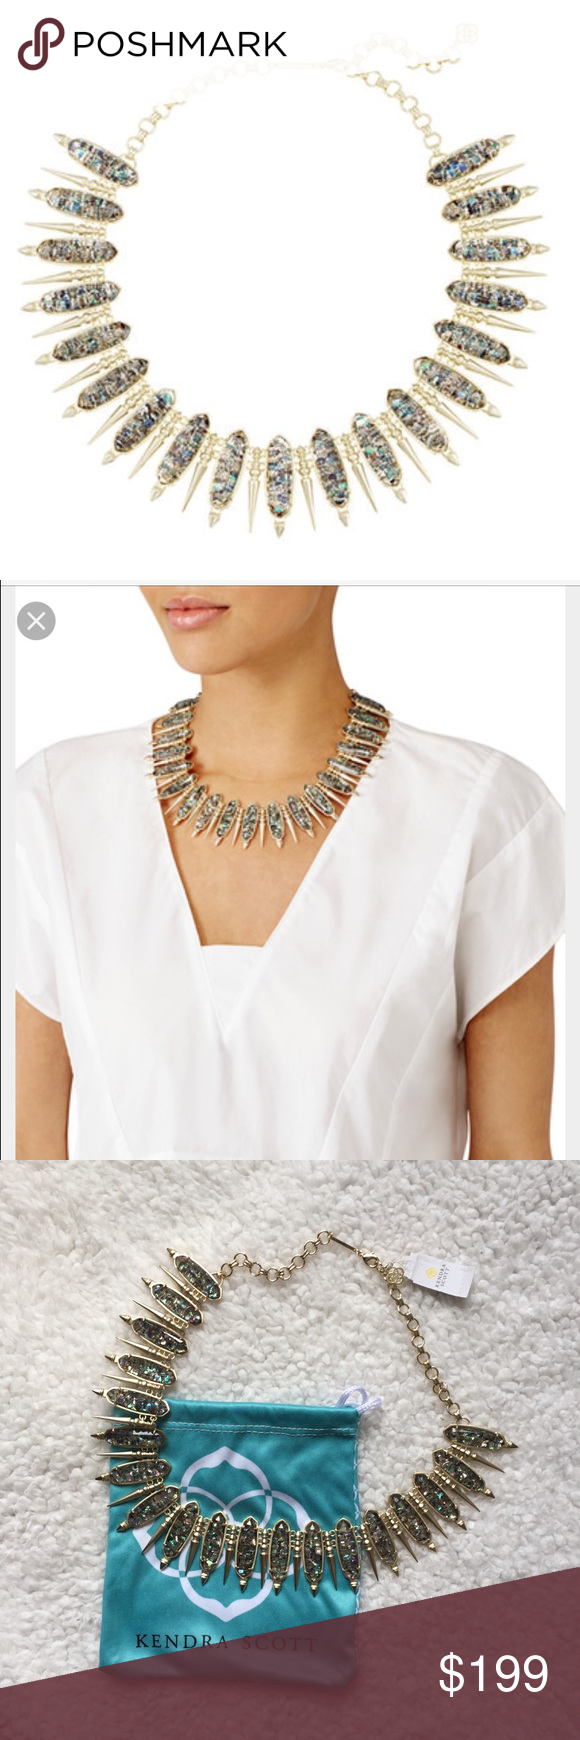 """Kendra Scott Gwendolyn Necklace Stunning statement necklace from Summer 2016 collection. Gold and crushed abalone shell. 18"""" long with 1.4"""" drop. New with tags, comes with the dust bag. You will absolutely love this piece! 💕 Kendra Scott Jewelry Necklaces"""